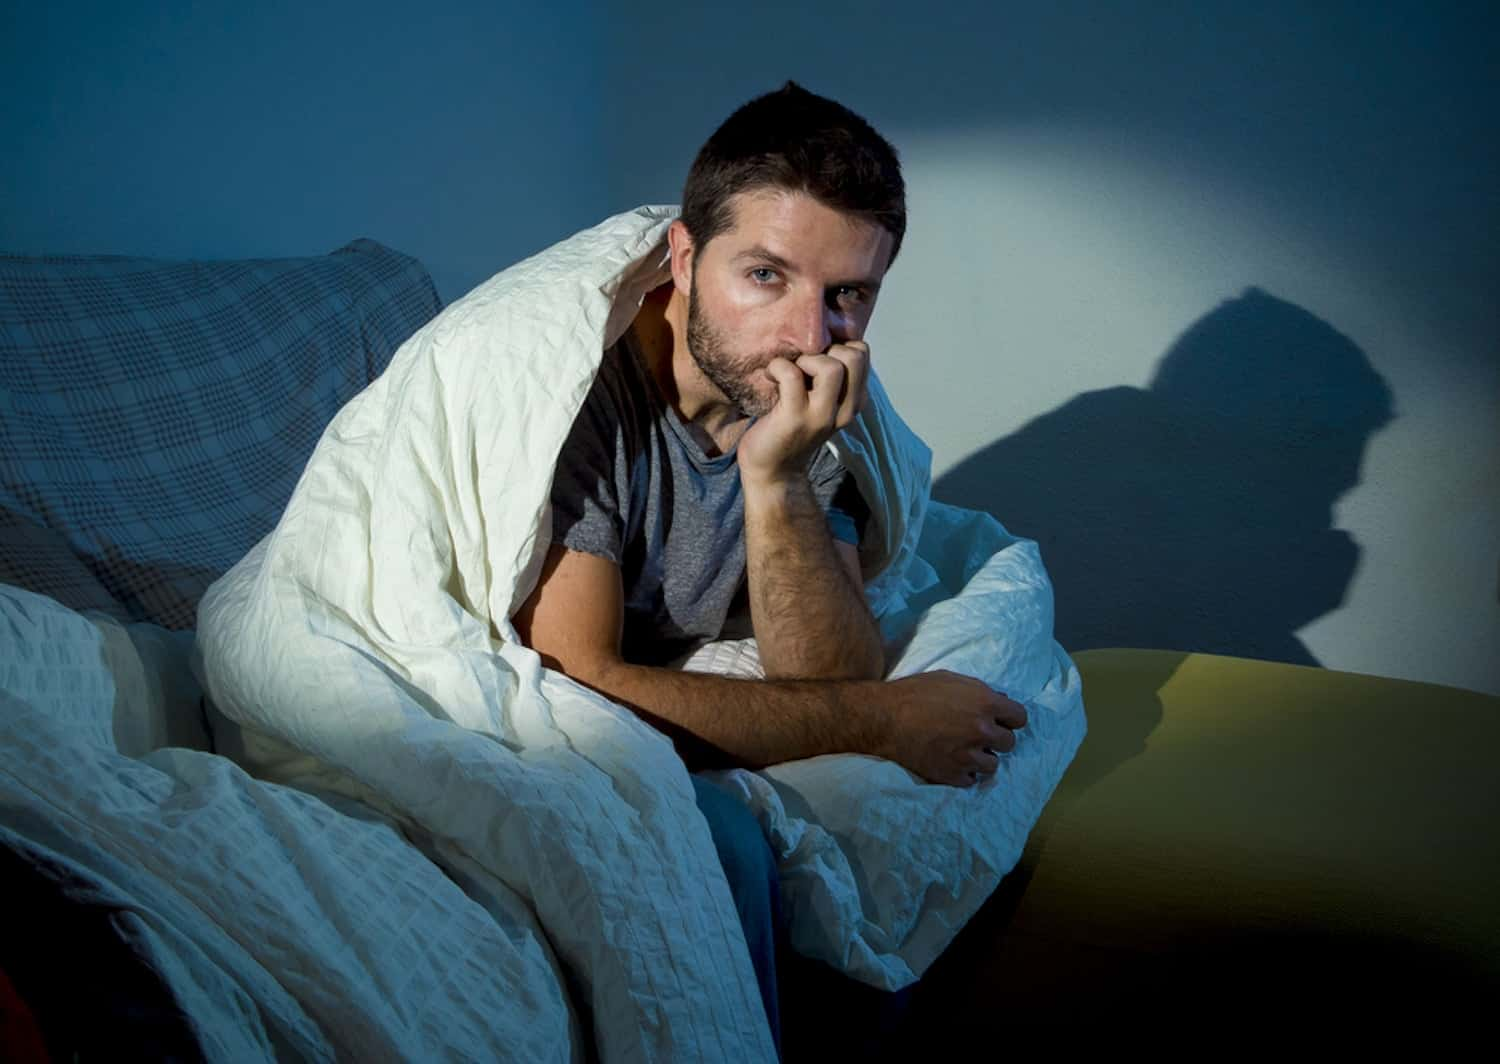 Man off sick in bed